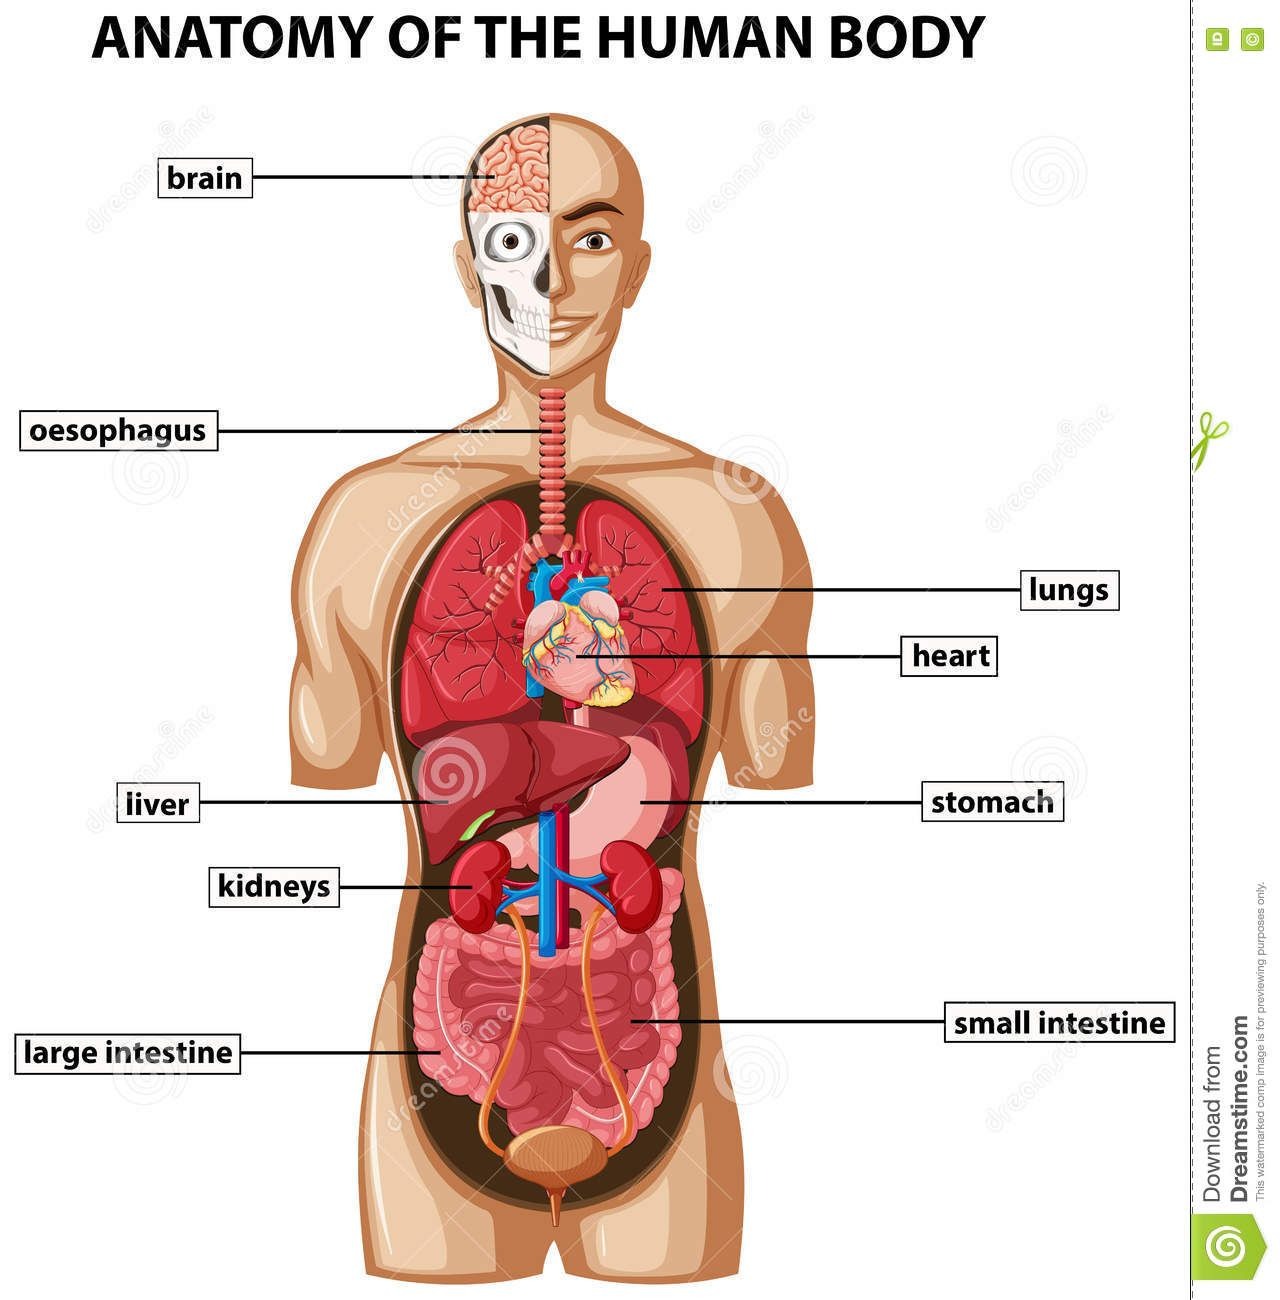 simple human body diagram wod wiring diagram rh 14 fbiuk budgethotel hannover de Anatomy Human Skeleton Diagram Simple Anatomy Diagrams Human Body Diagrams